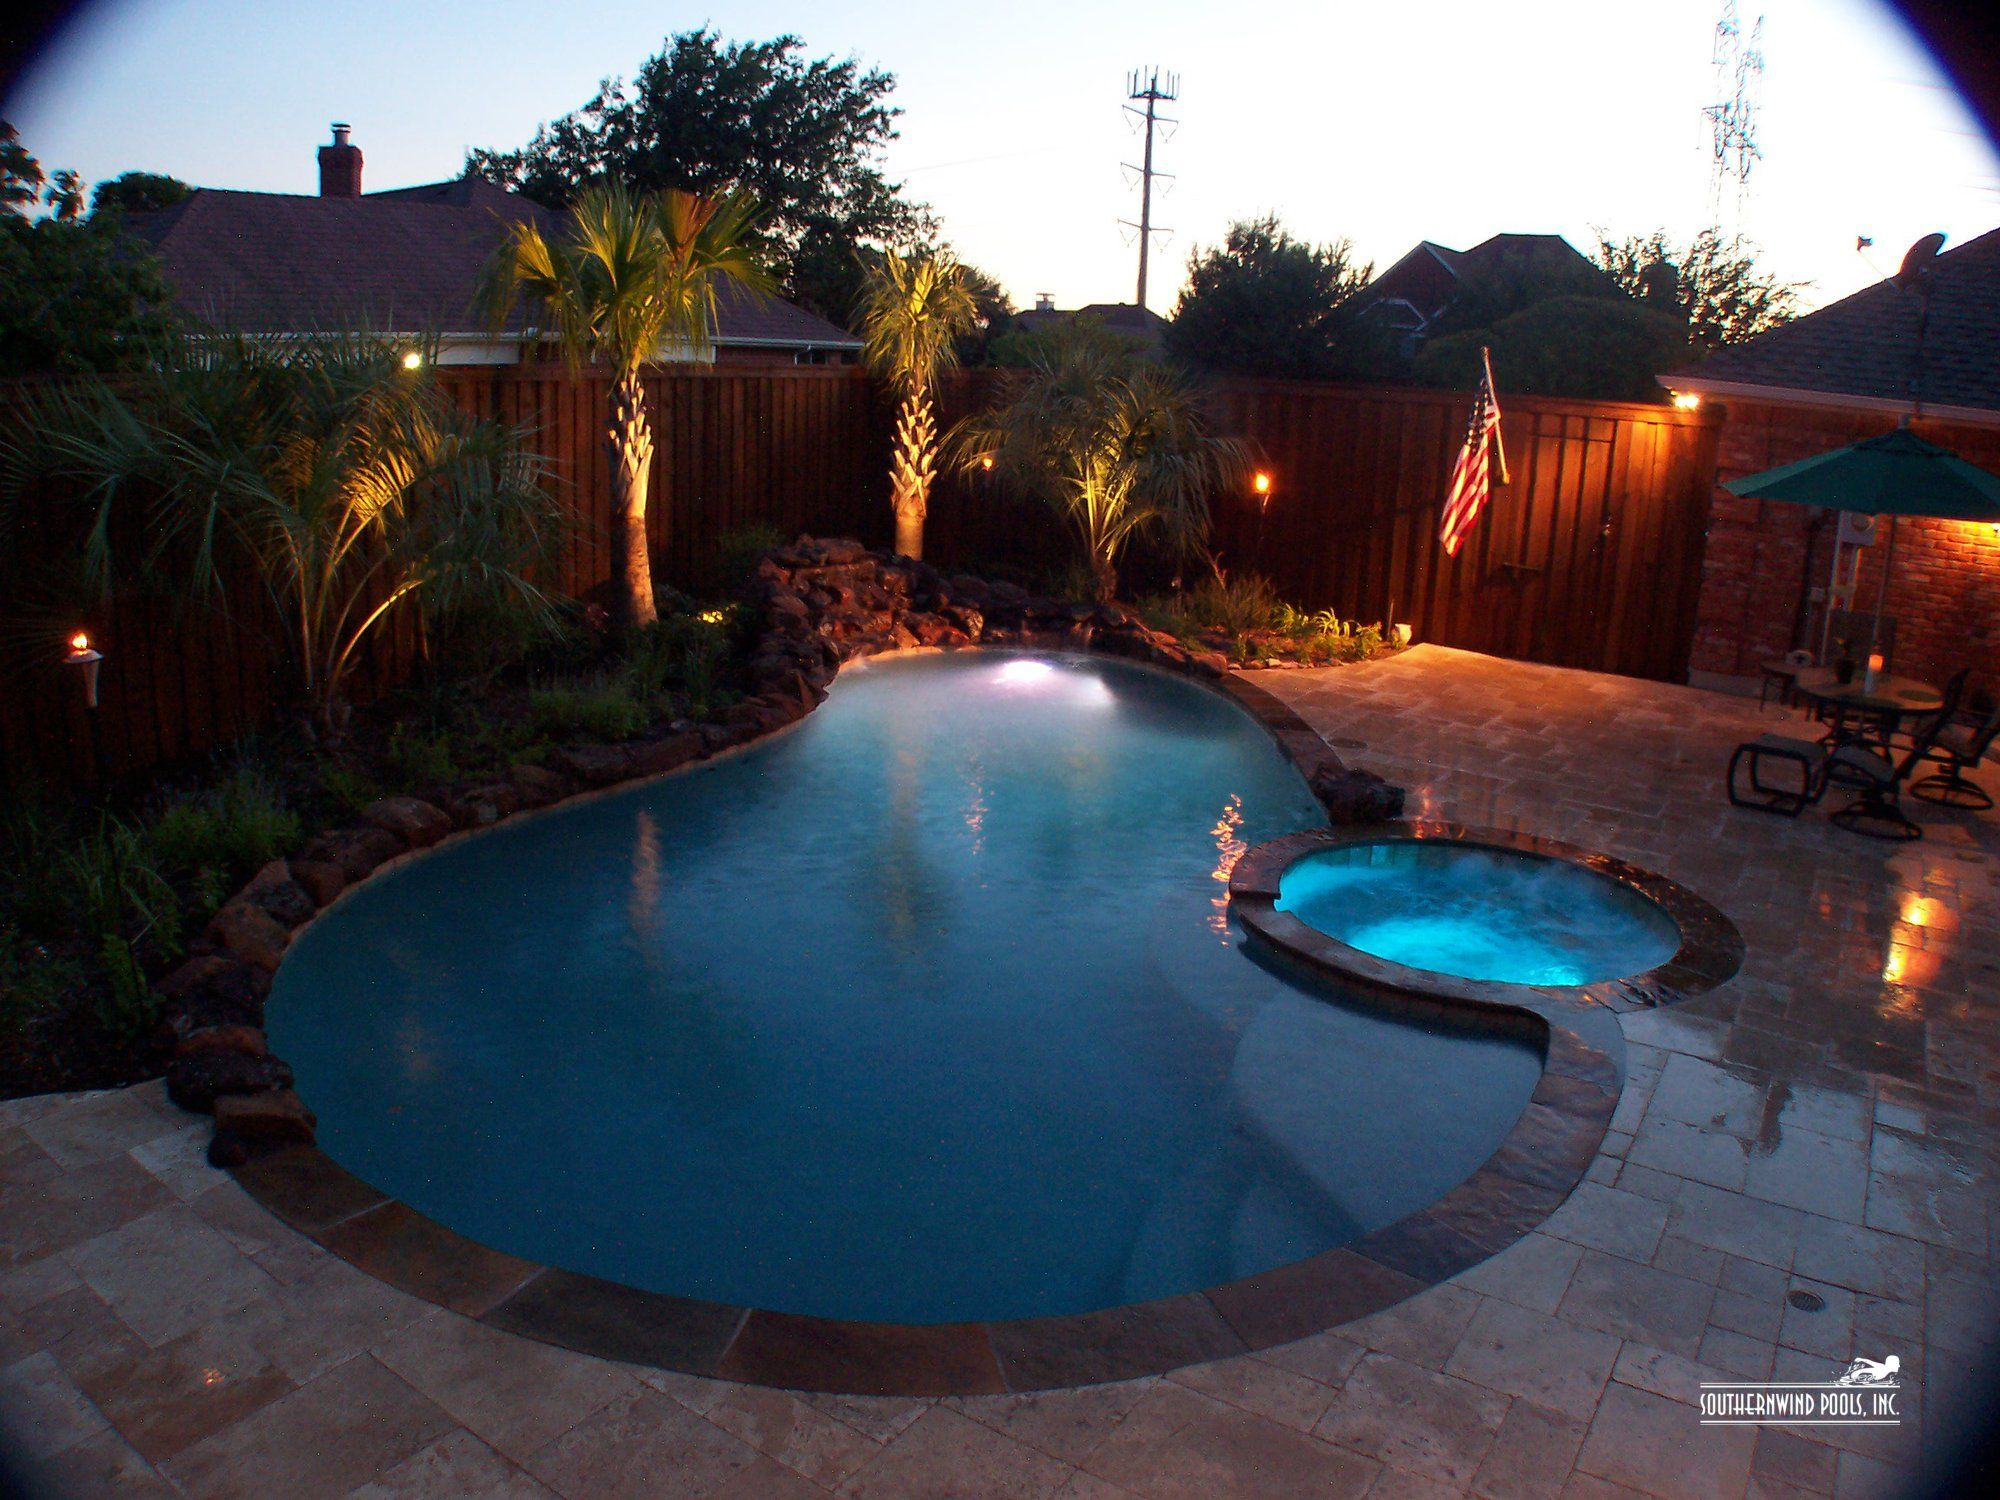 Southernwind Pools - Our Pools Natural Free Form Pools Gallery